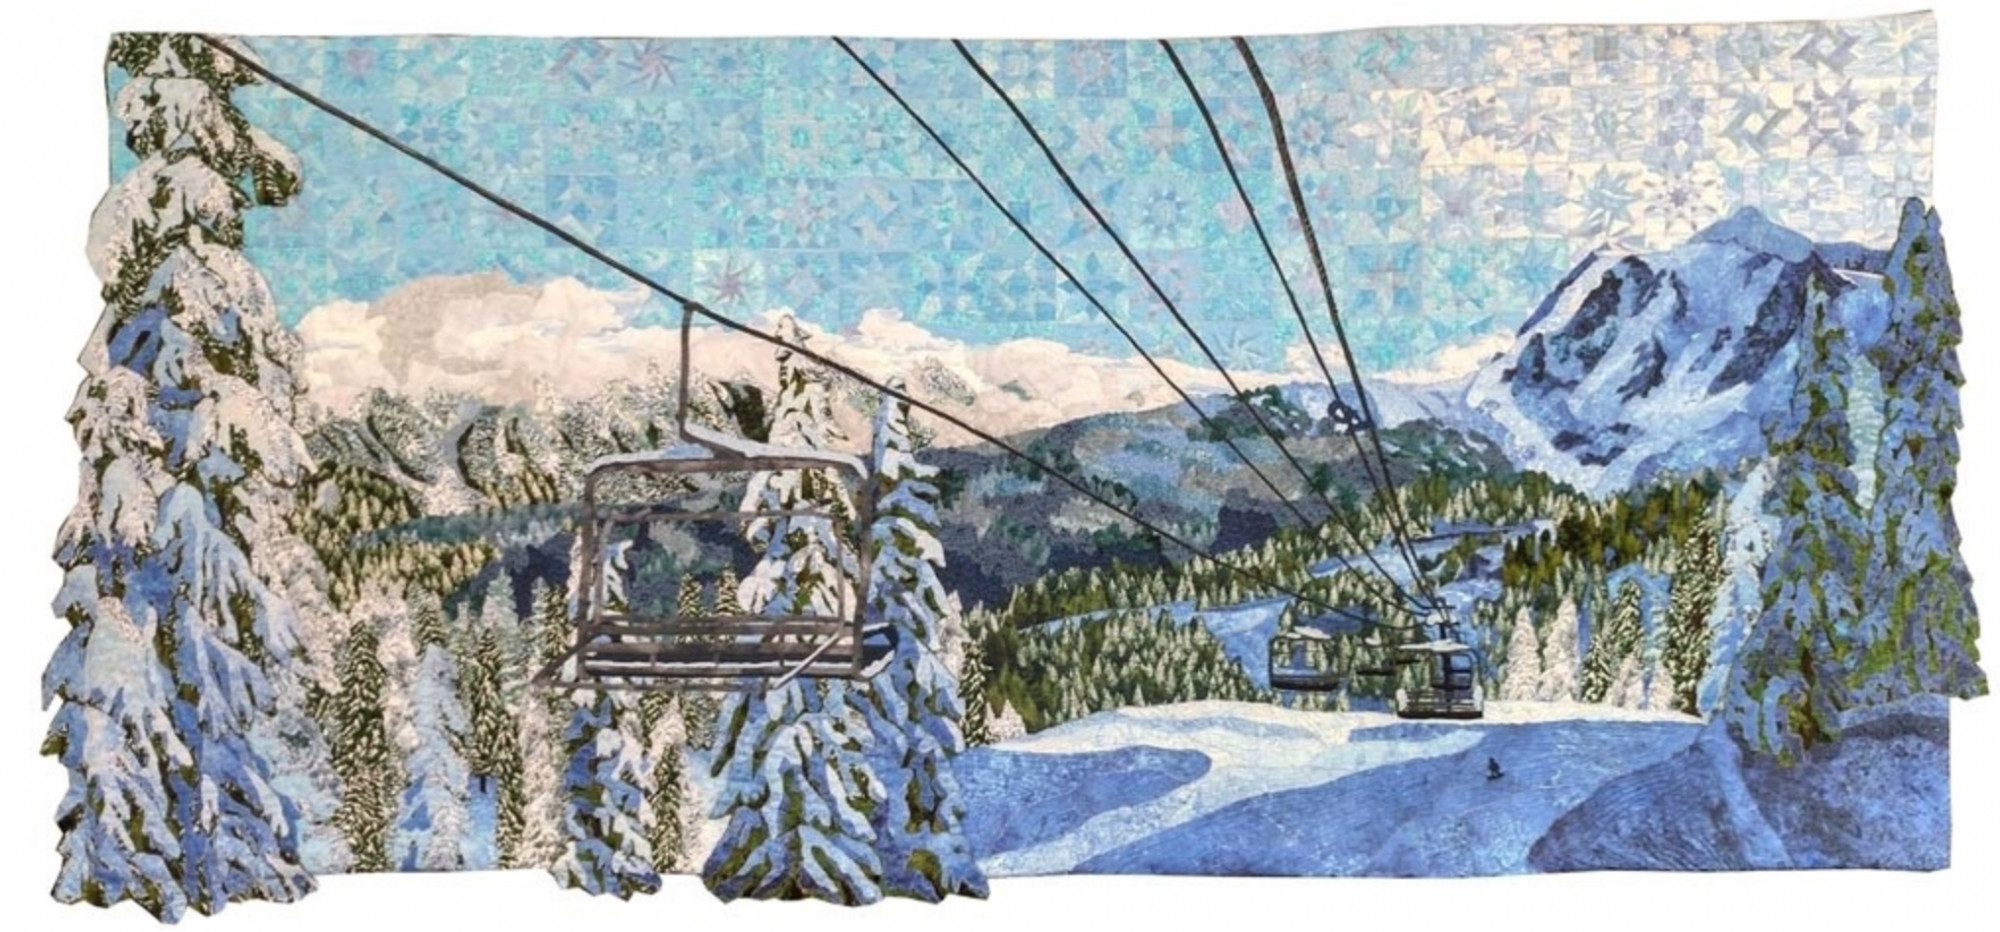 Snow Day by Angie Tustison (Photo from Mancuso 2021 Spring Quilt Festival website)